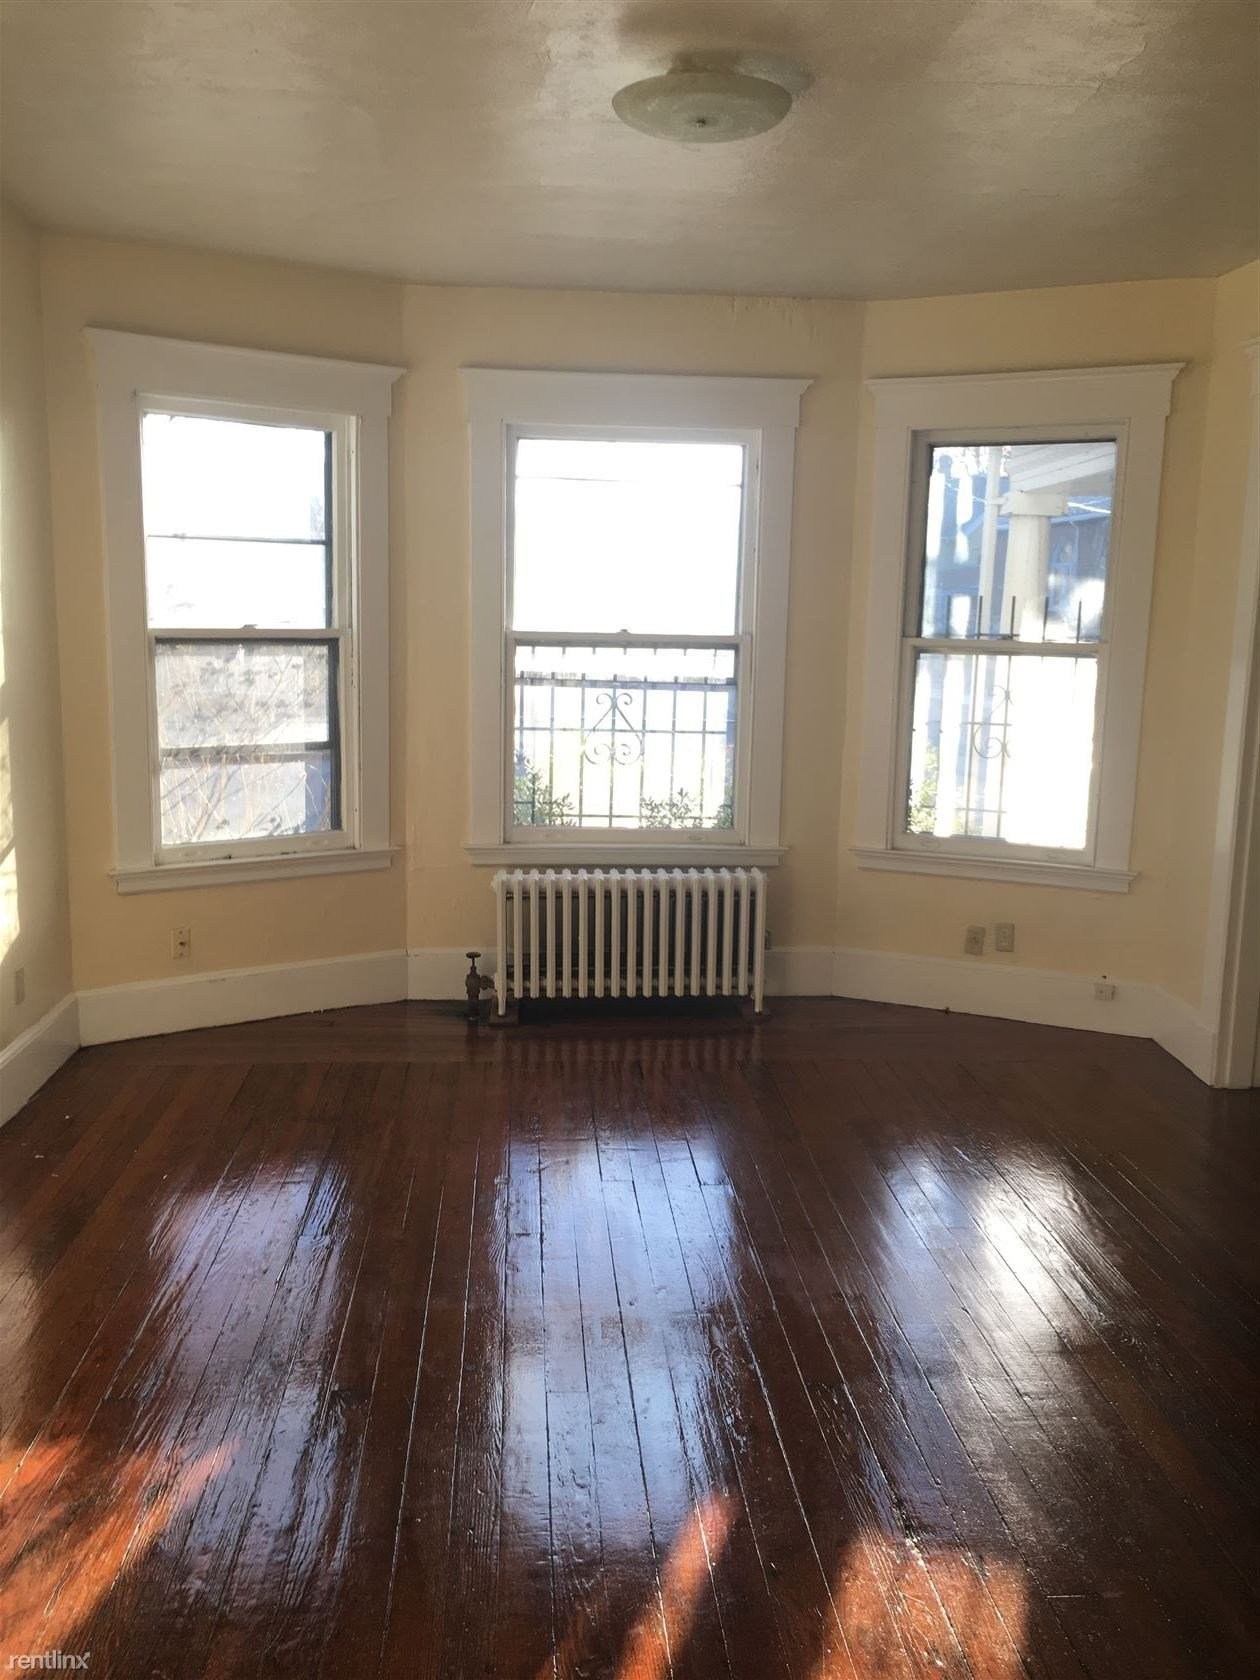 Best 621 Elm St New Haven Ct 06511 2 Bedroom Apartment For Rent For 1 050 Month Zumper With Pictures